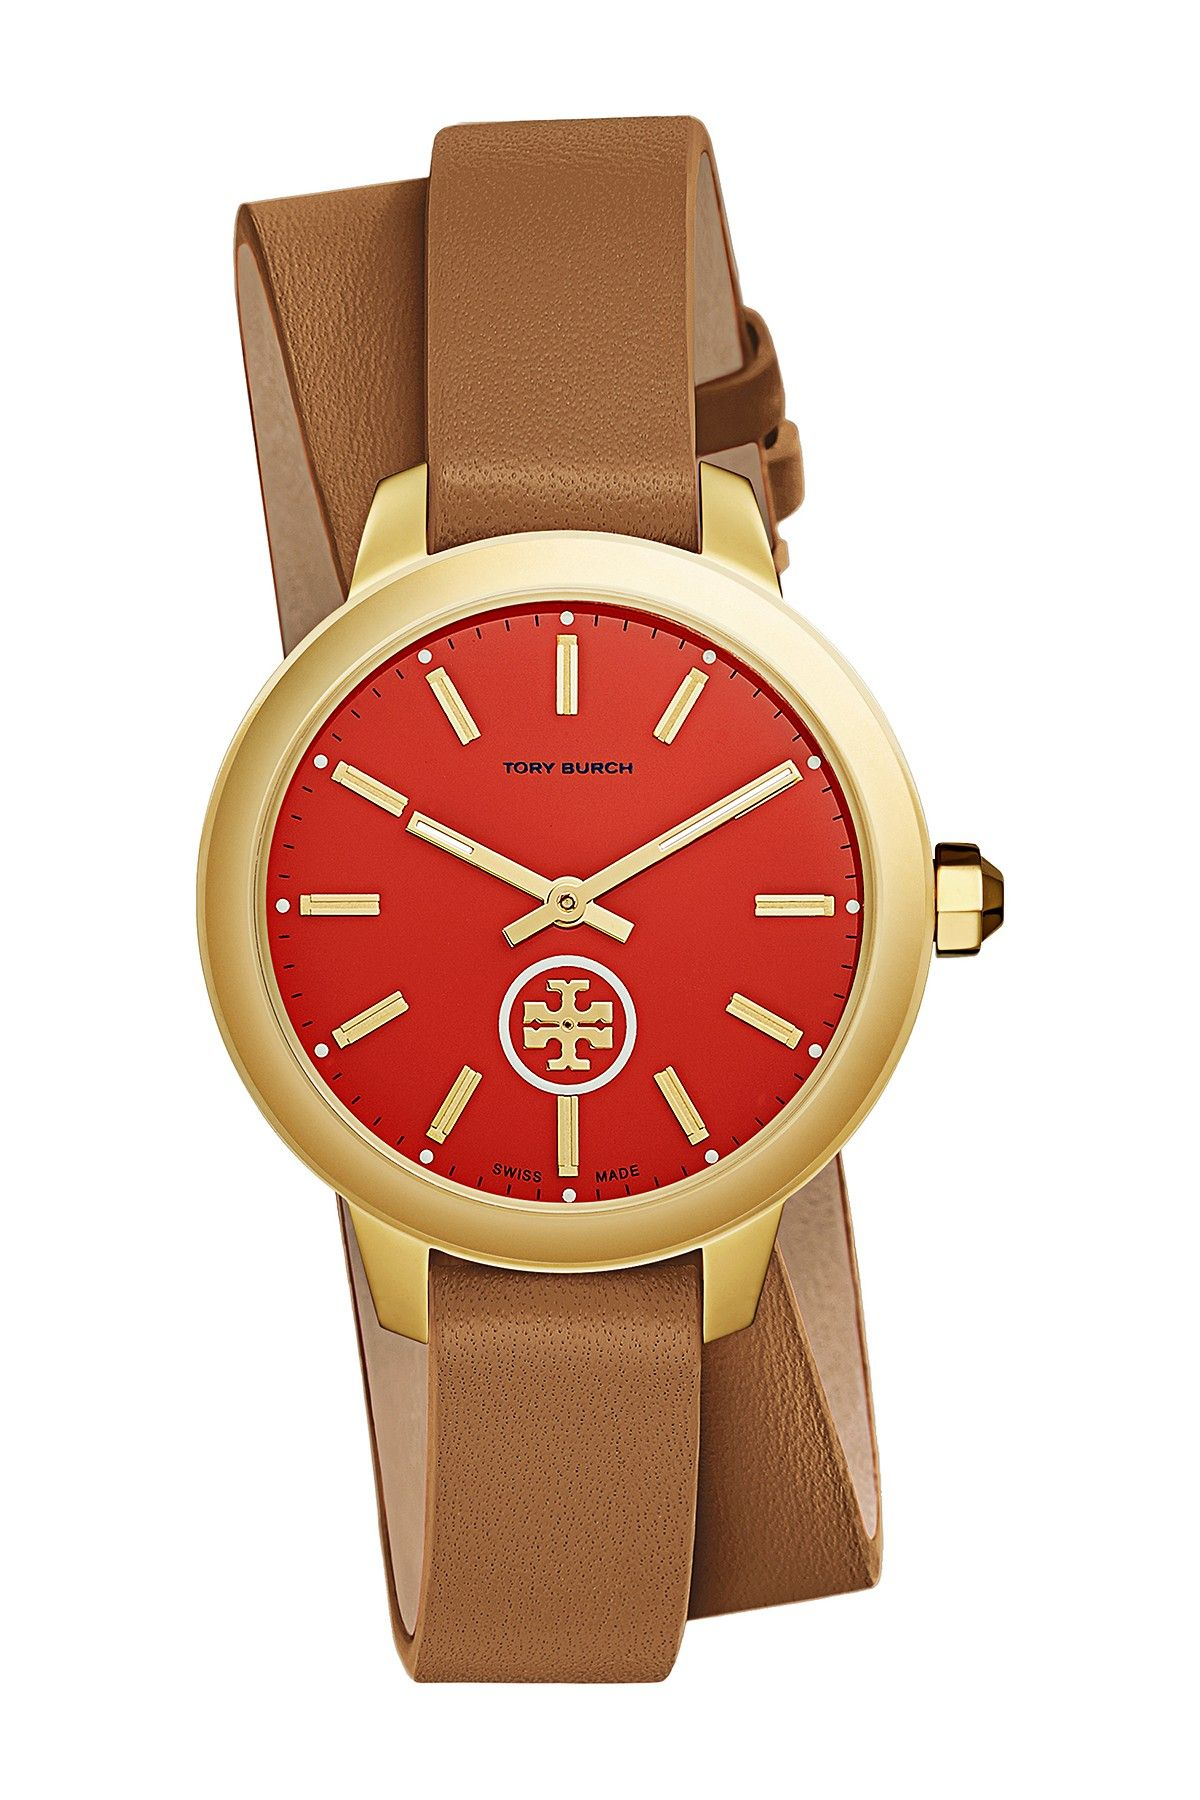 129bfb7dbea8 Women s The Collins Watch by Tory Burch on  nordstrom rack